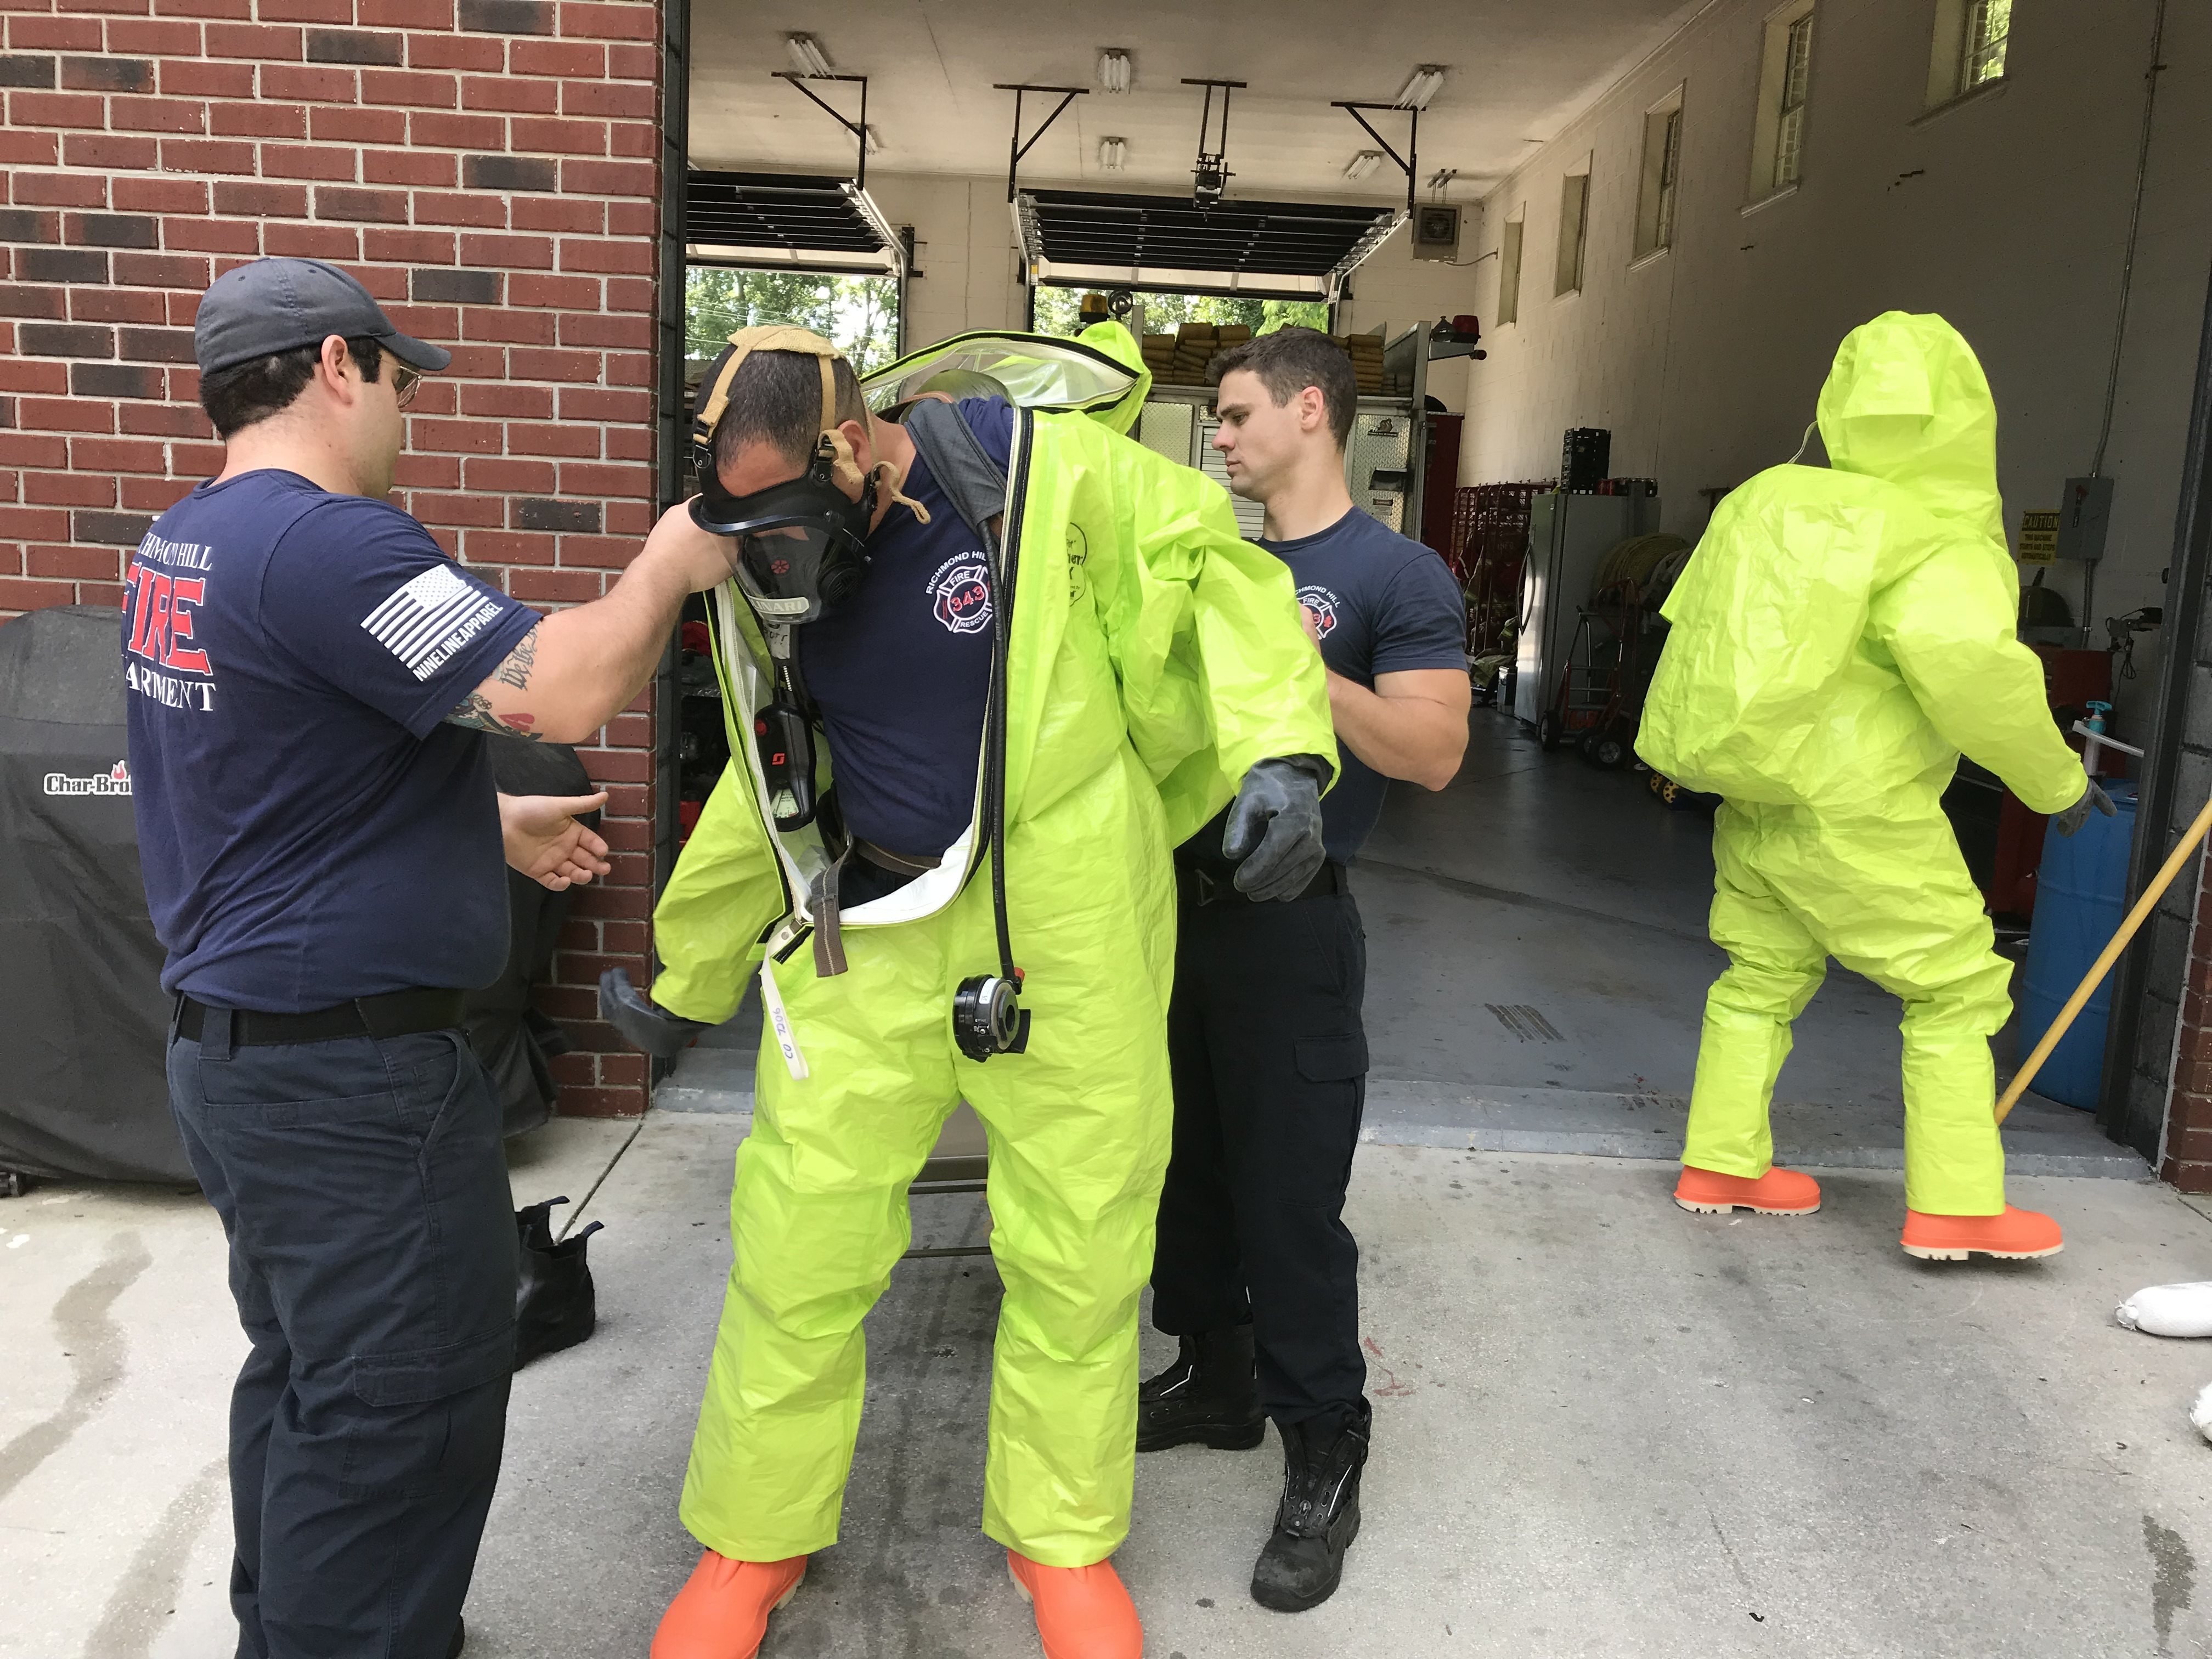 A firefighter being put into a Hazmat suit